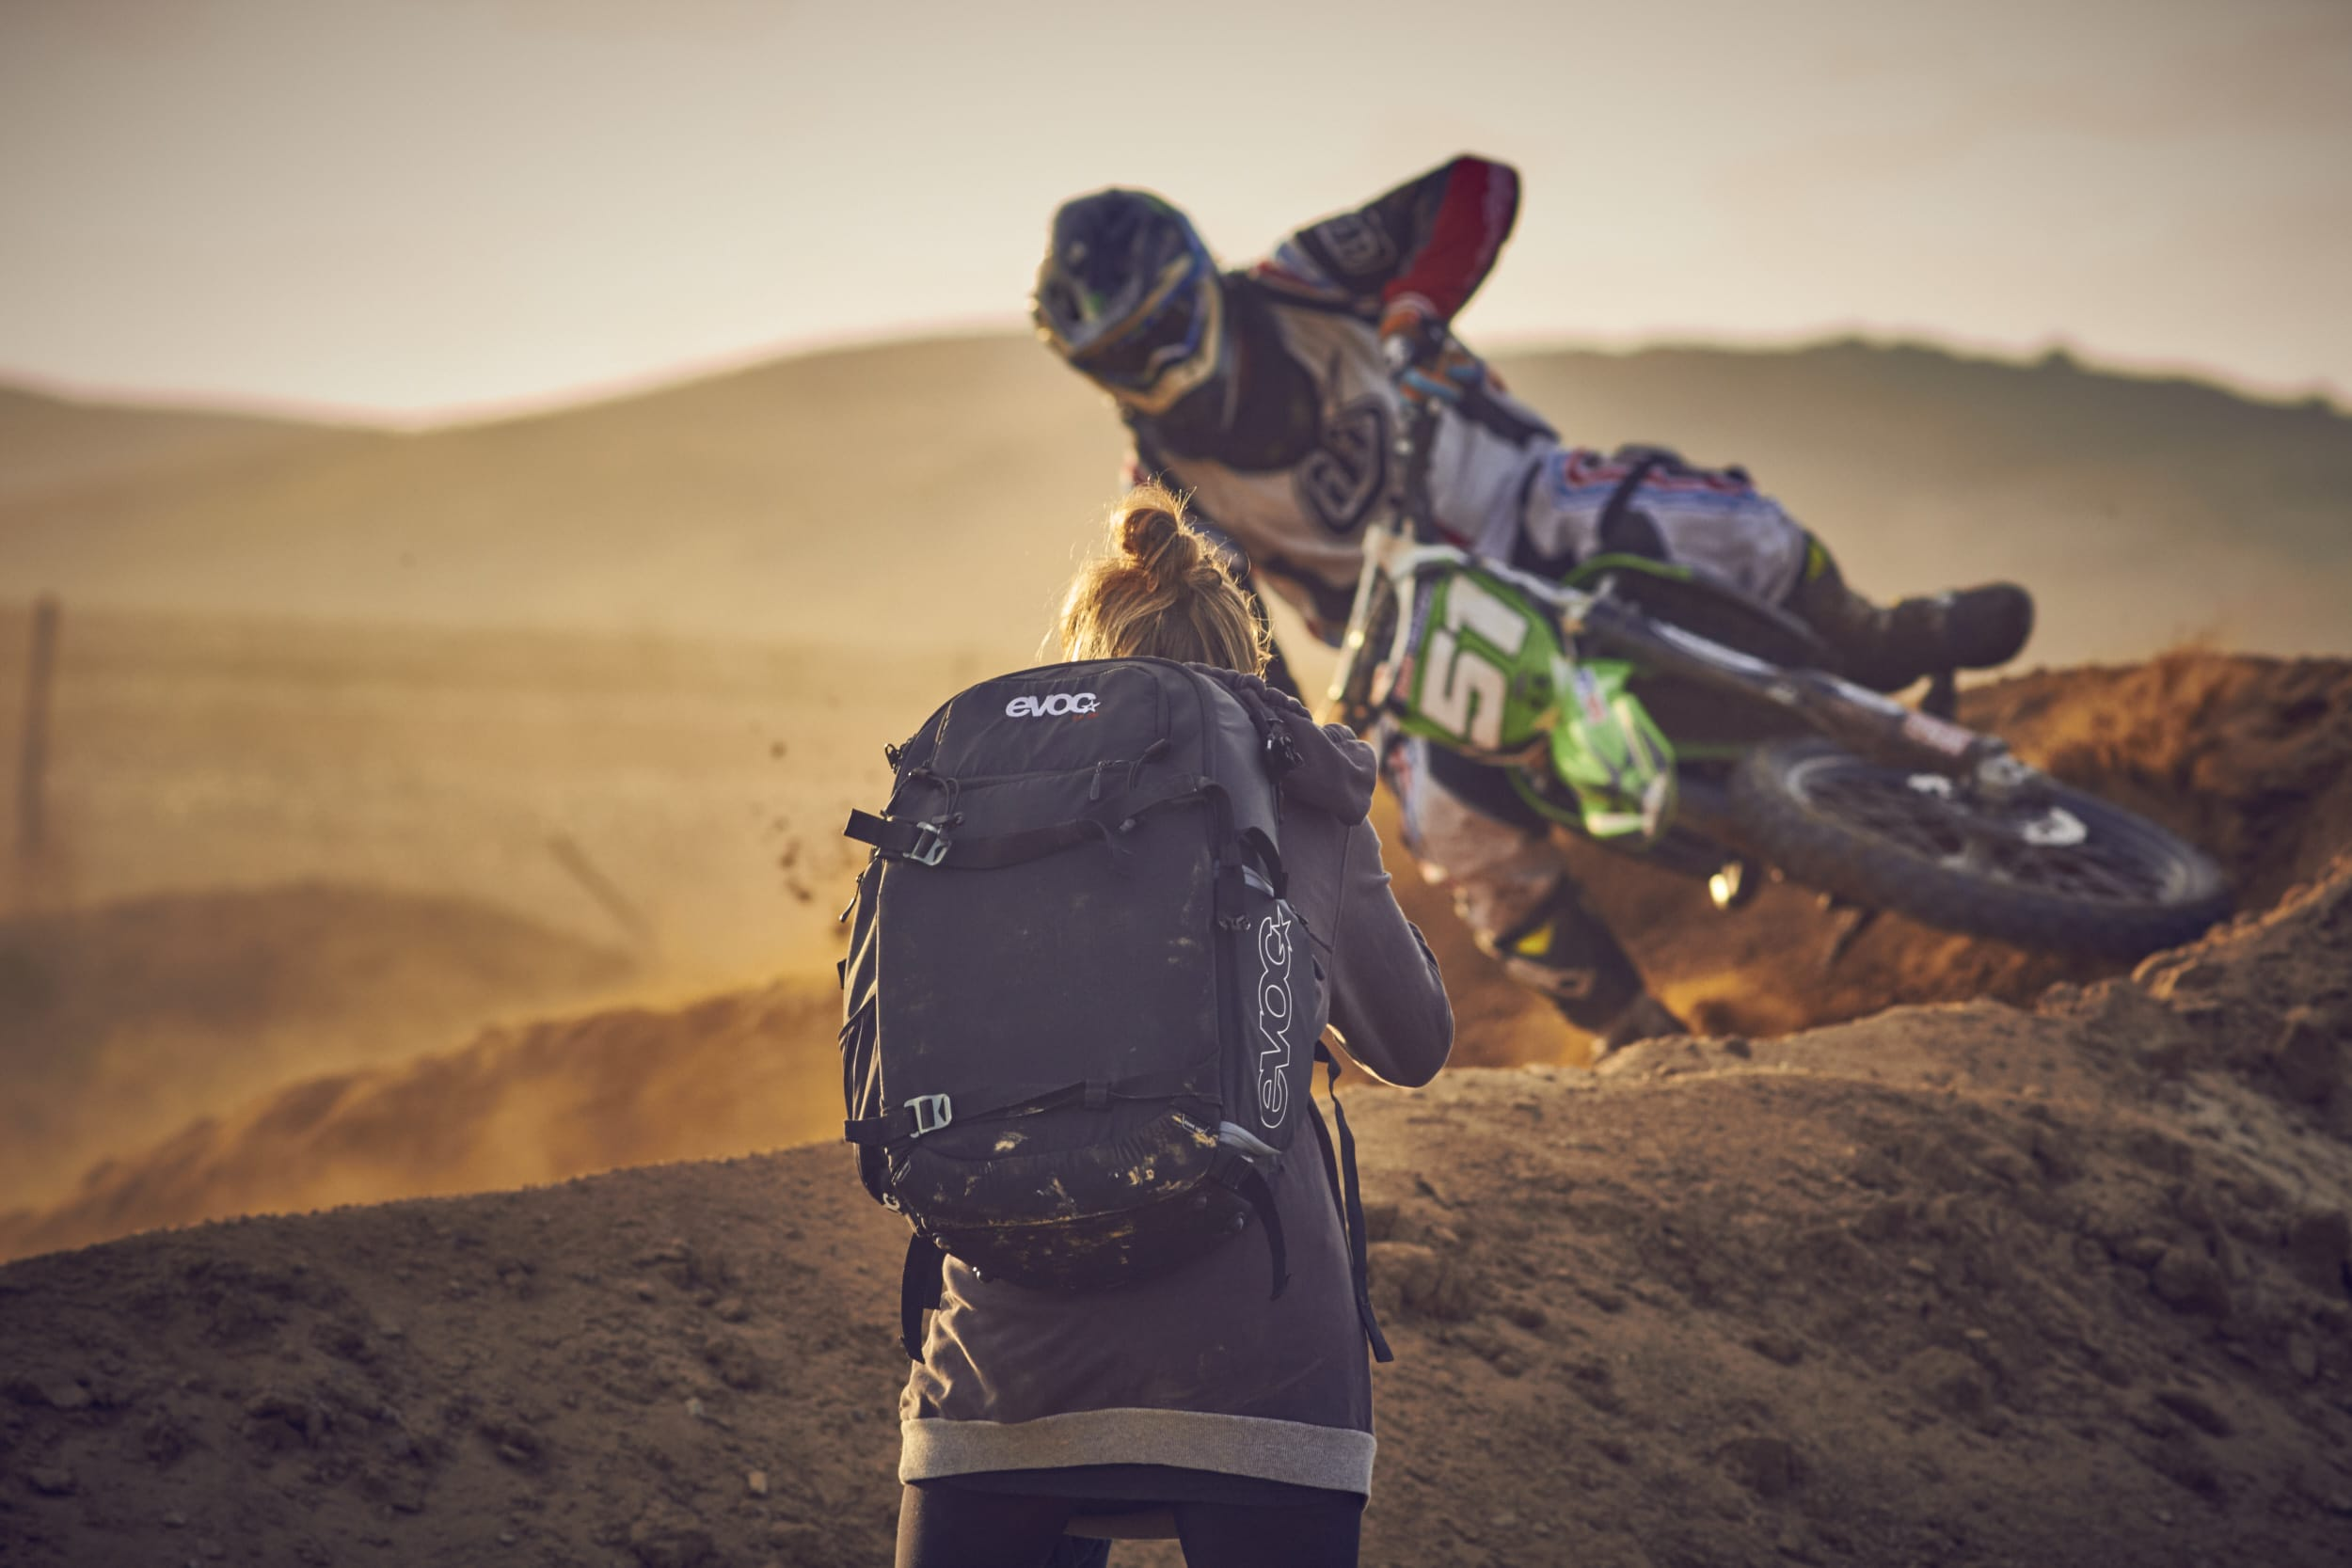 cpt_motorcross 256 ©martinsass